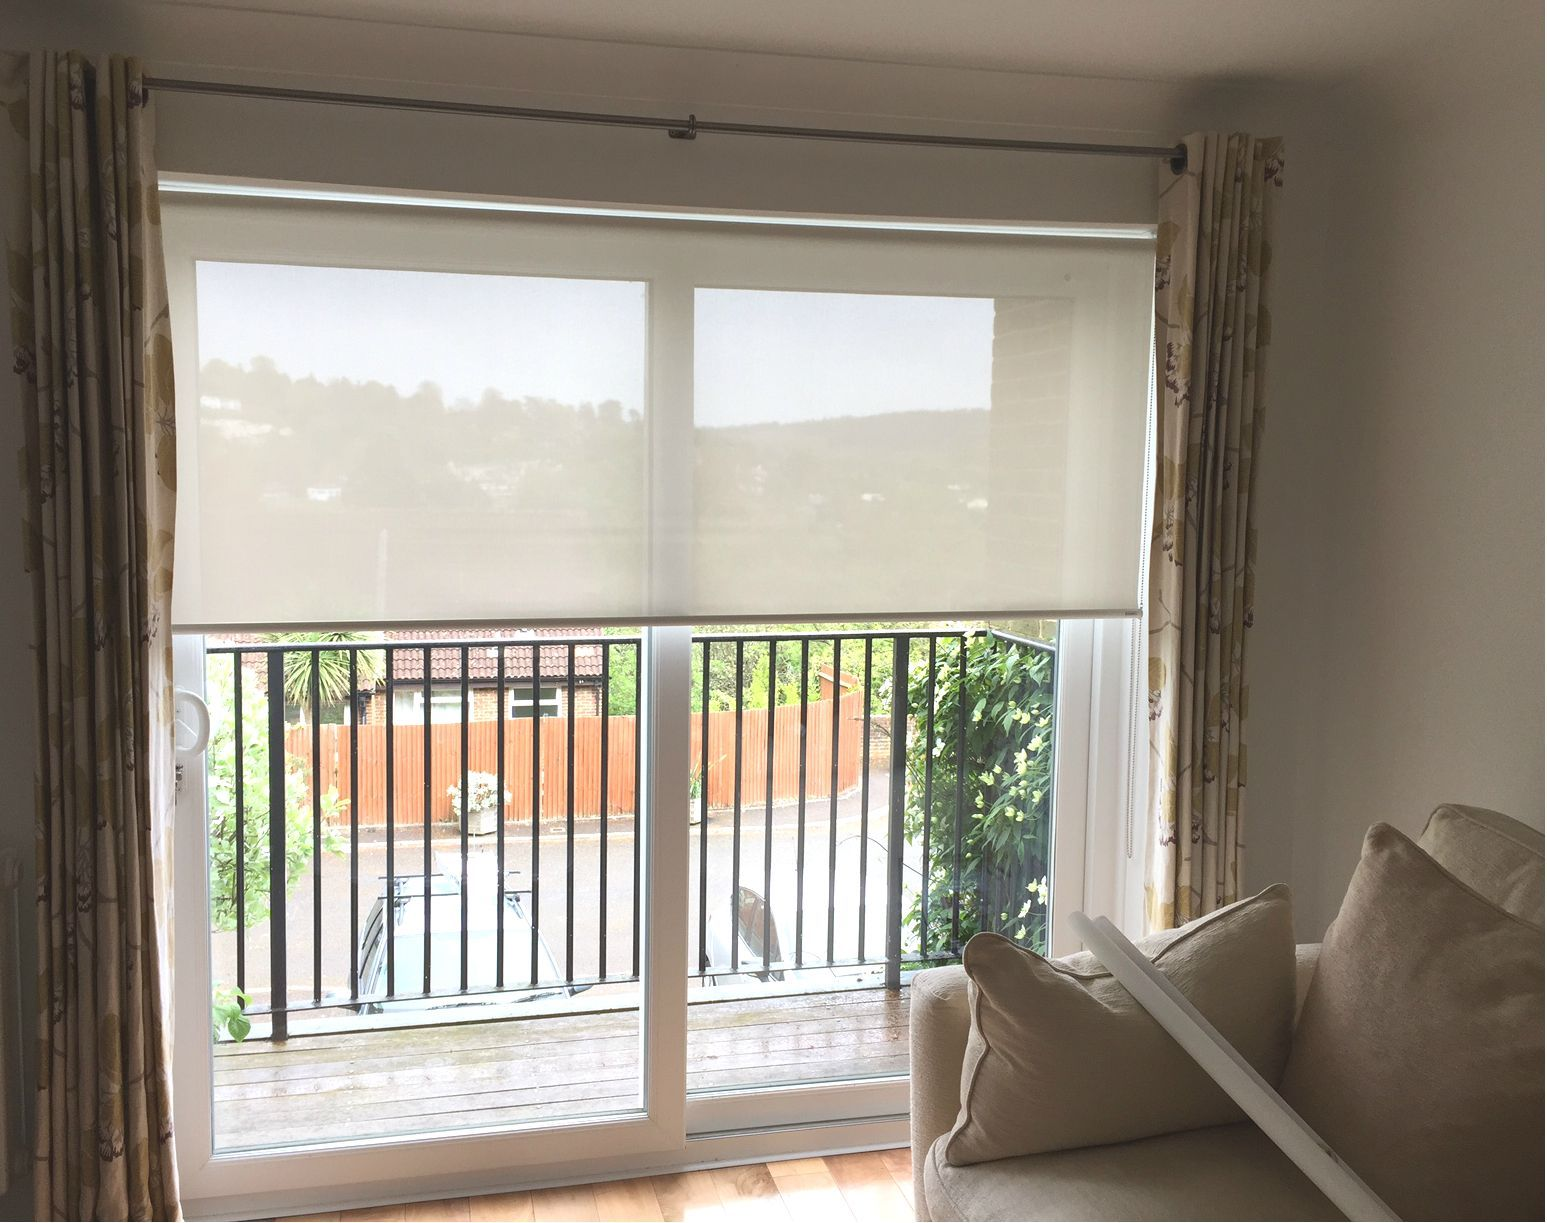 Sunscreen Roller Blinds We Installed To Window And Sliding Door With